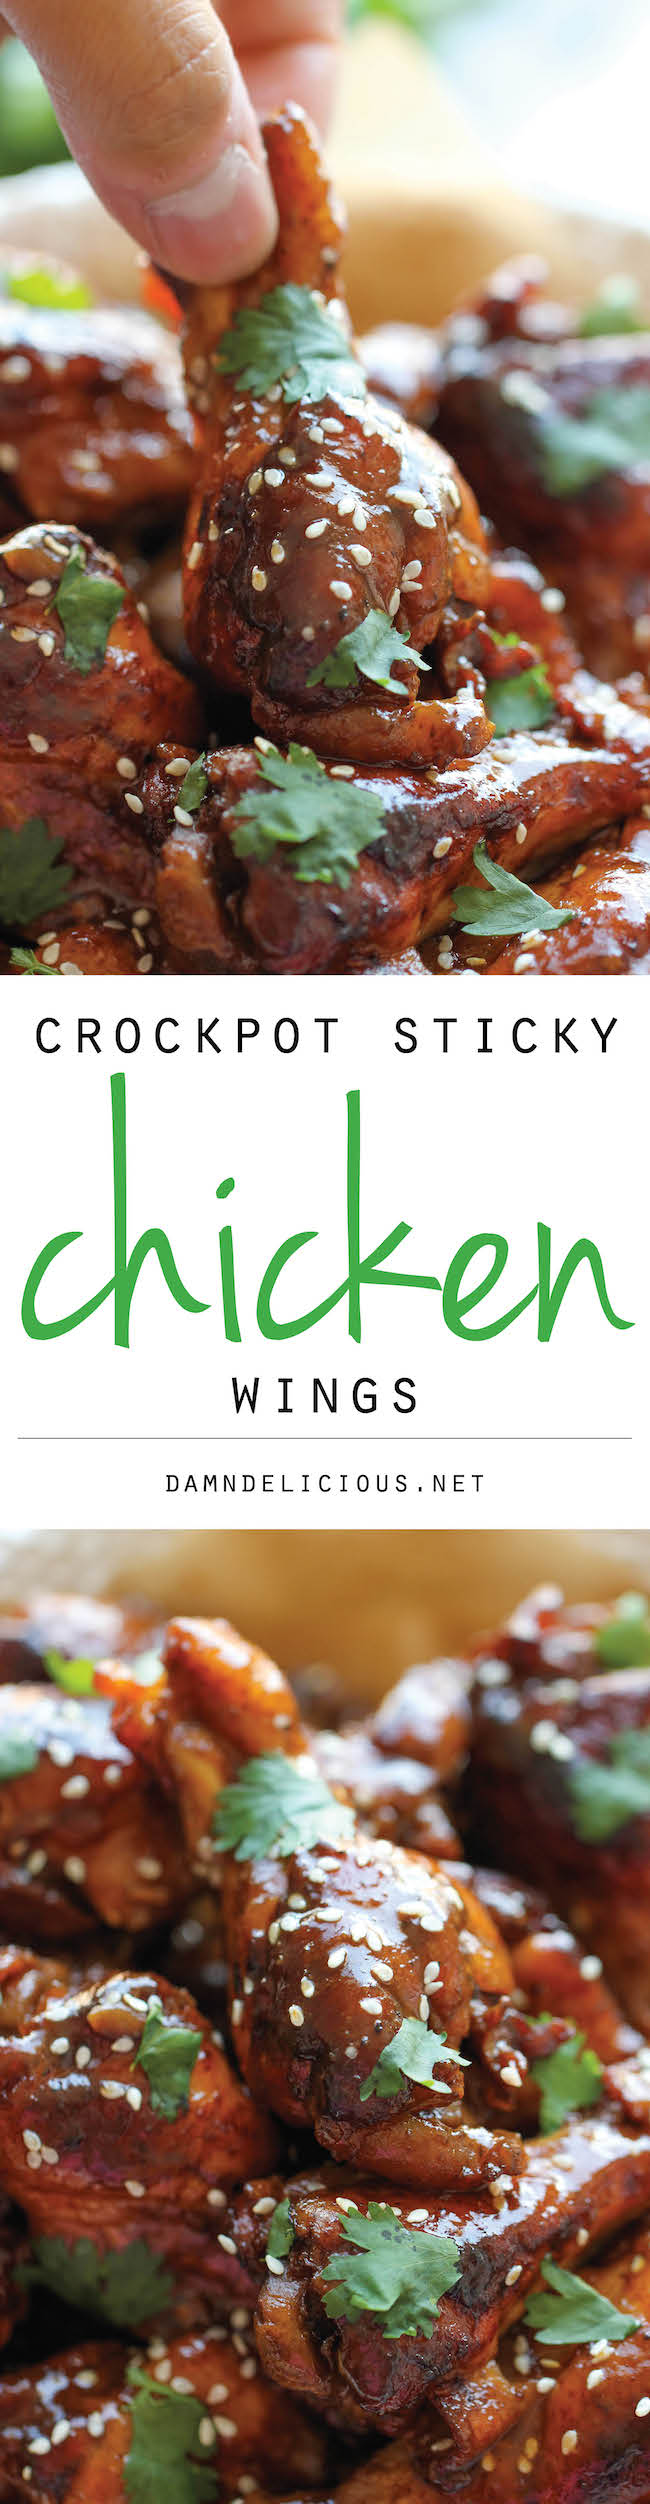 Slow Cooker Sticky Chicken Wings - The easiest wings you will ever make. Just throw everything into the crockpot and you're set! Easy peasy!